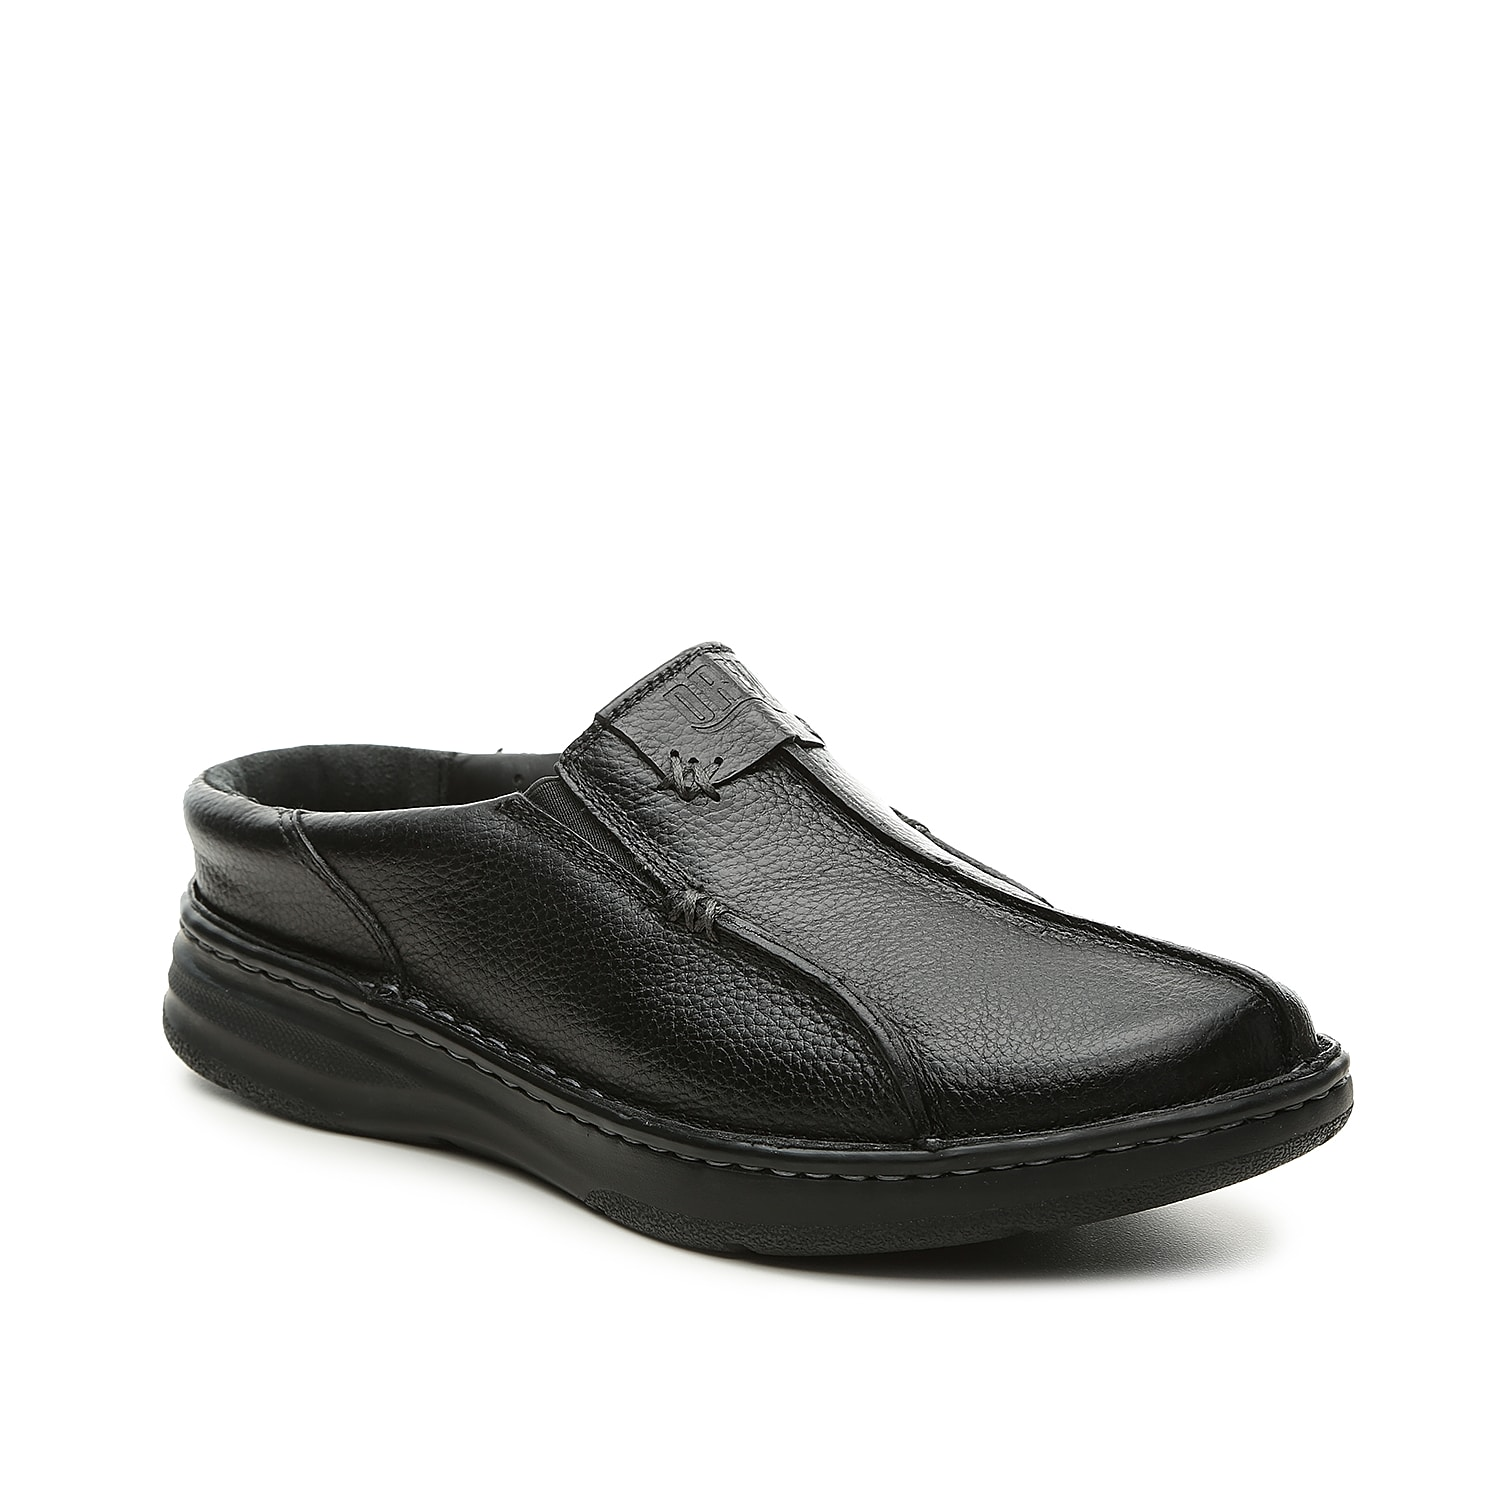 Perfect for days on the go, the Jackson offers optimal comfort for extended wear. This slip-on features two elastic gores to keep your foot in place, while a removable cushioned insole ensures extra comfort.